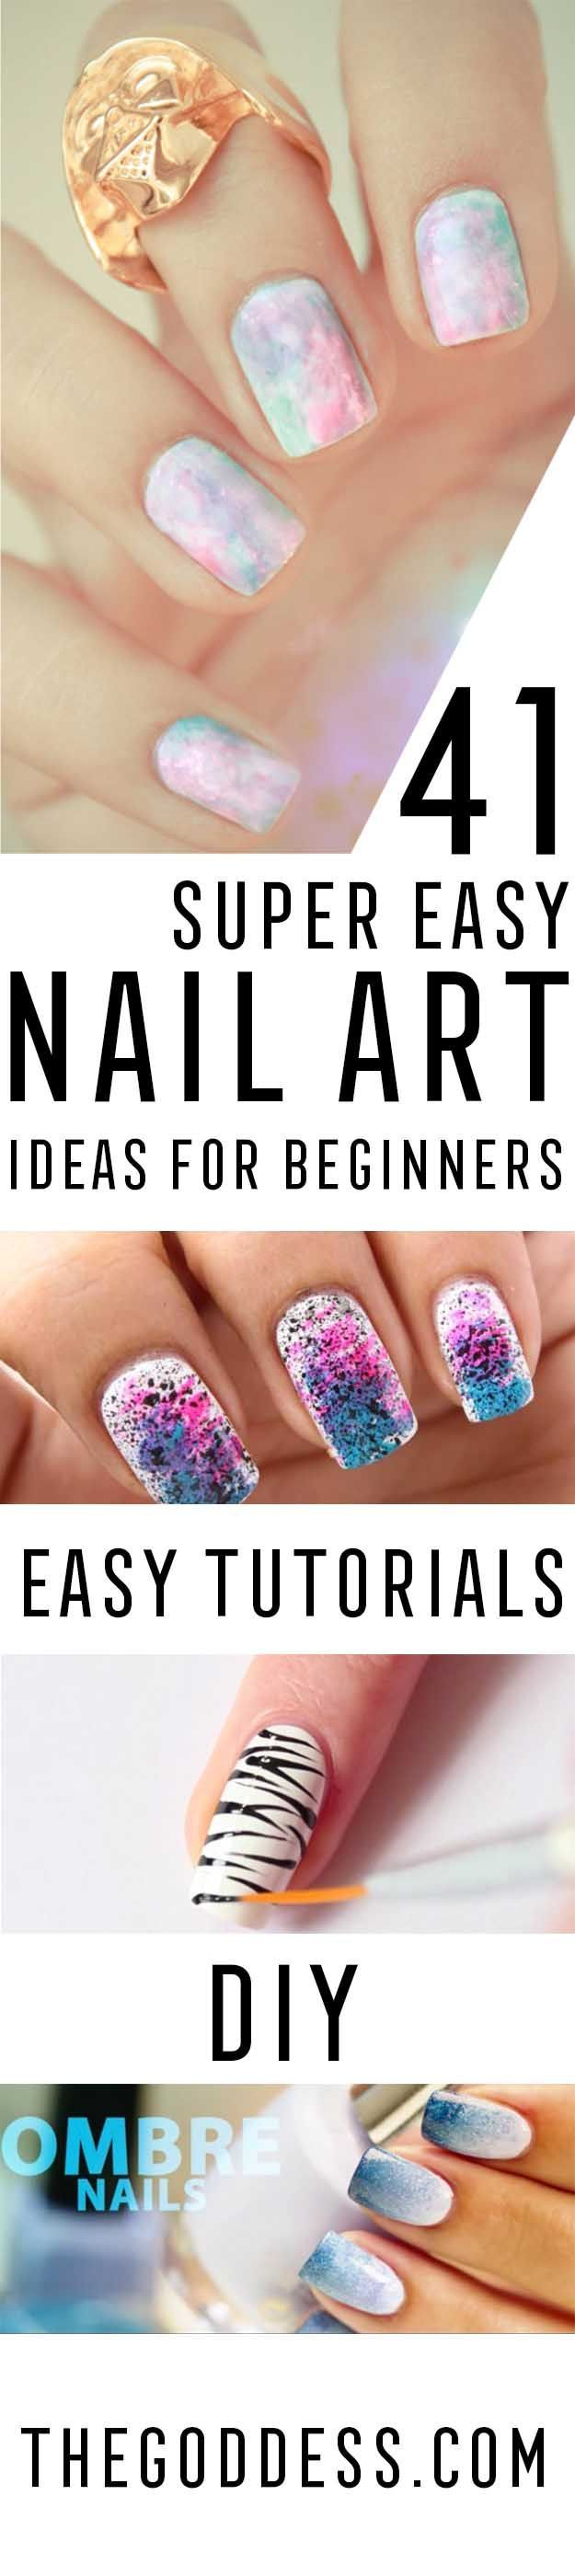 Super Easy Nail Art Ideas for Beginners - Simple Step By Step DIY Tutorials And Pictures For Nailart.  Ideas For Every Style, All Hair Colors, Sparkle, Valentines, And other Awesome Products To Make It DIY and Super Easy - http://thegoddess.com/nail-art-ideas-beginners